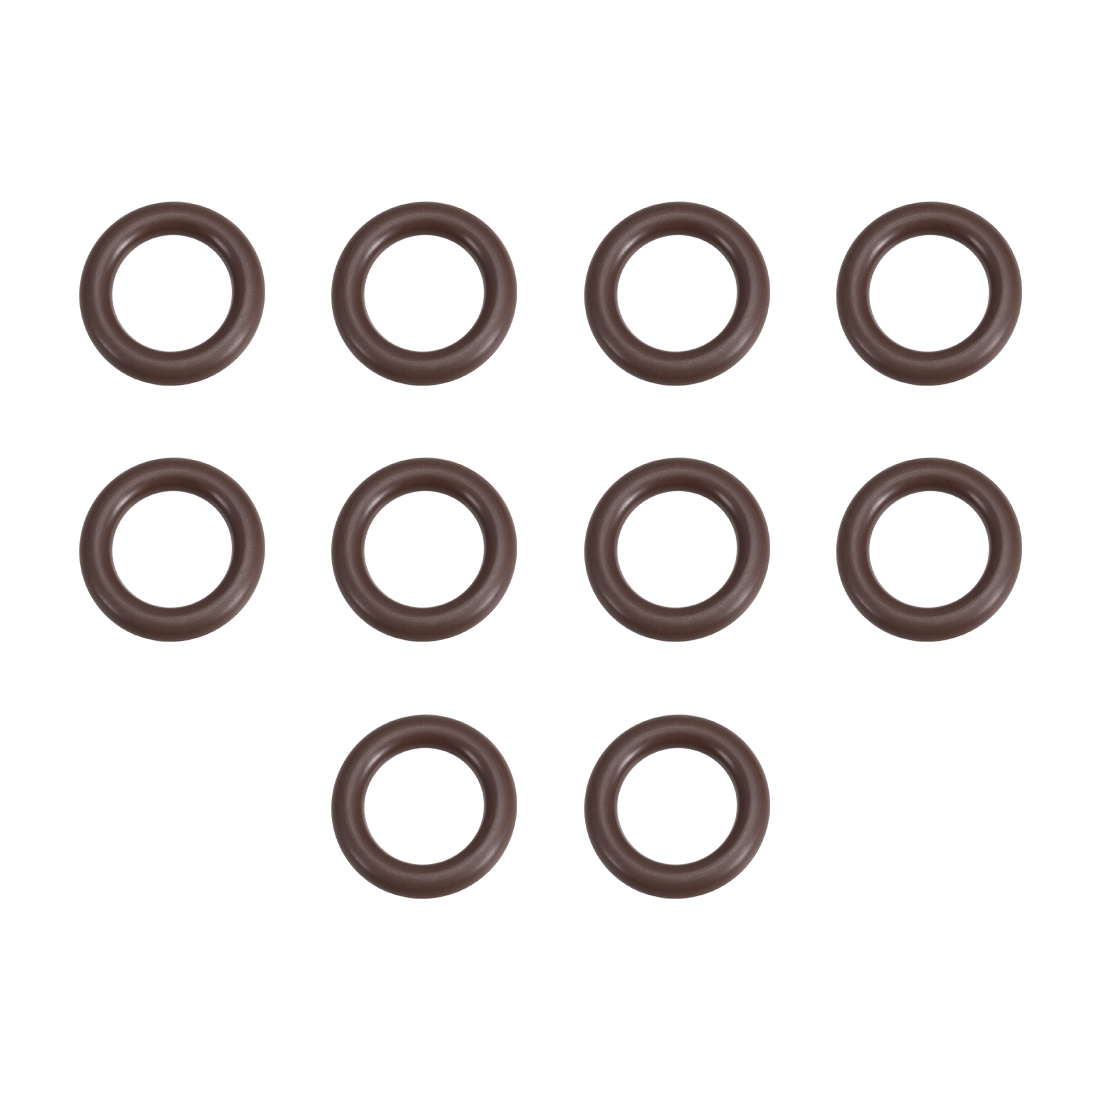 10 Pcs Fluororubber Gasket Sanitary Clamp Washer 24mm x 14mm O-Ring